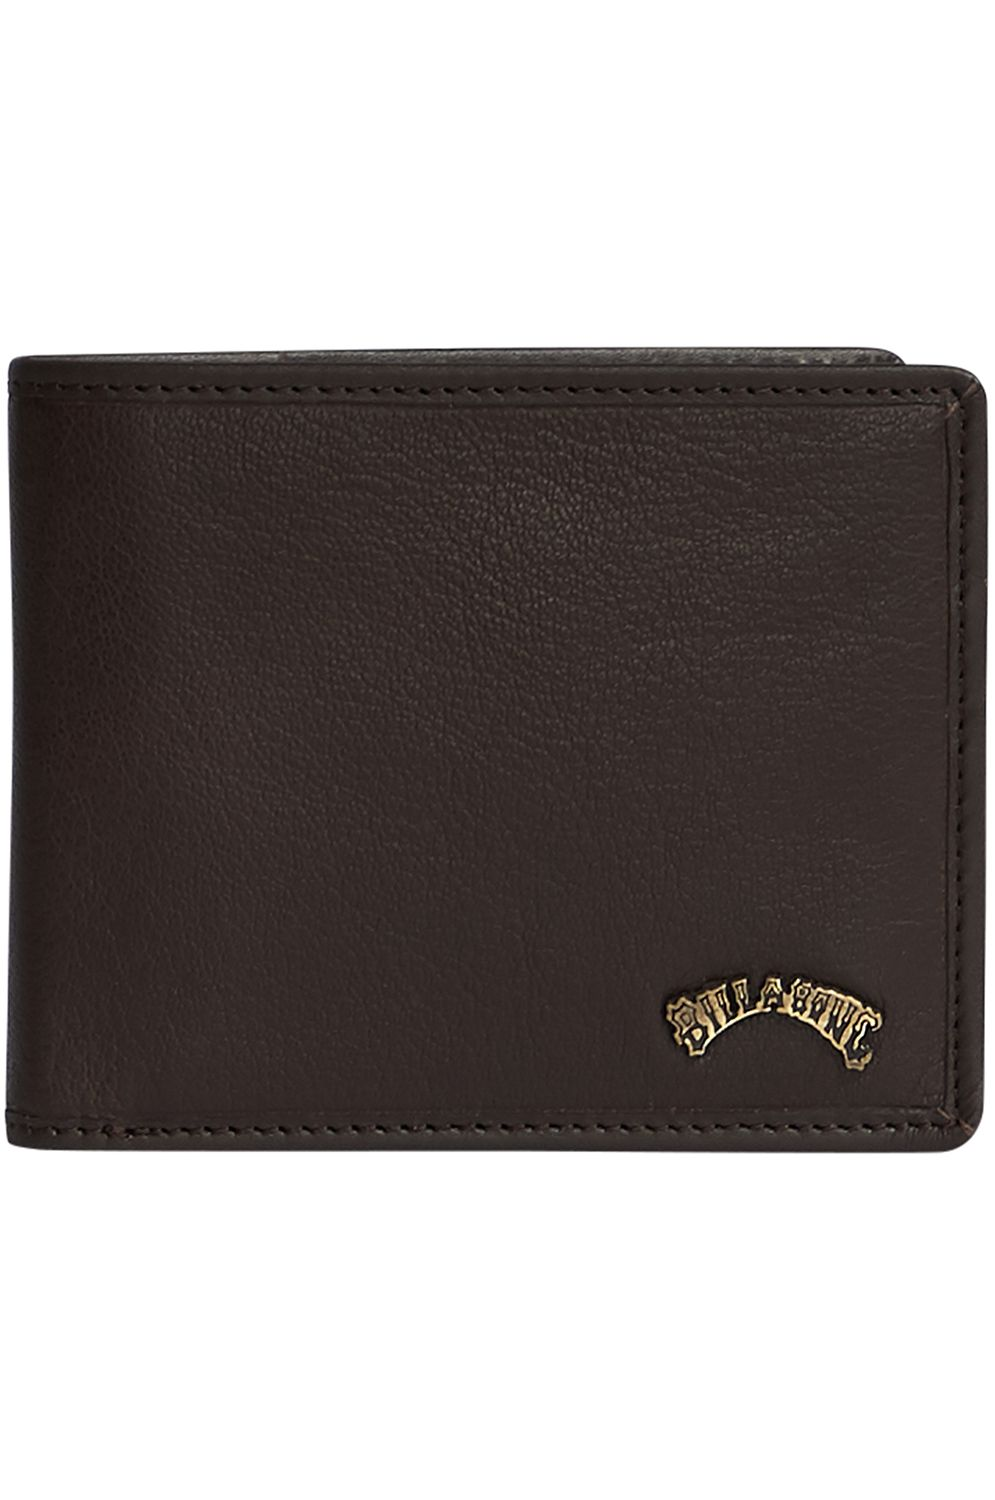 Billabong Leather Wallet ARCH ID LEATHER Chocolate